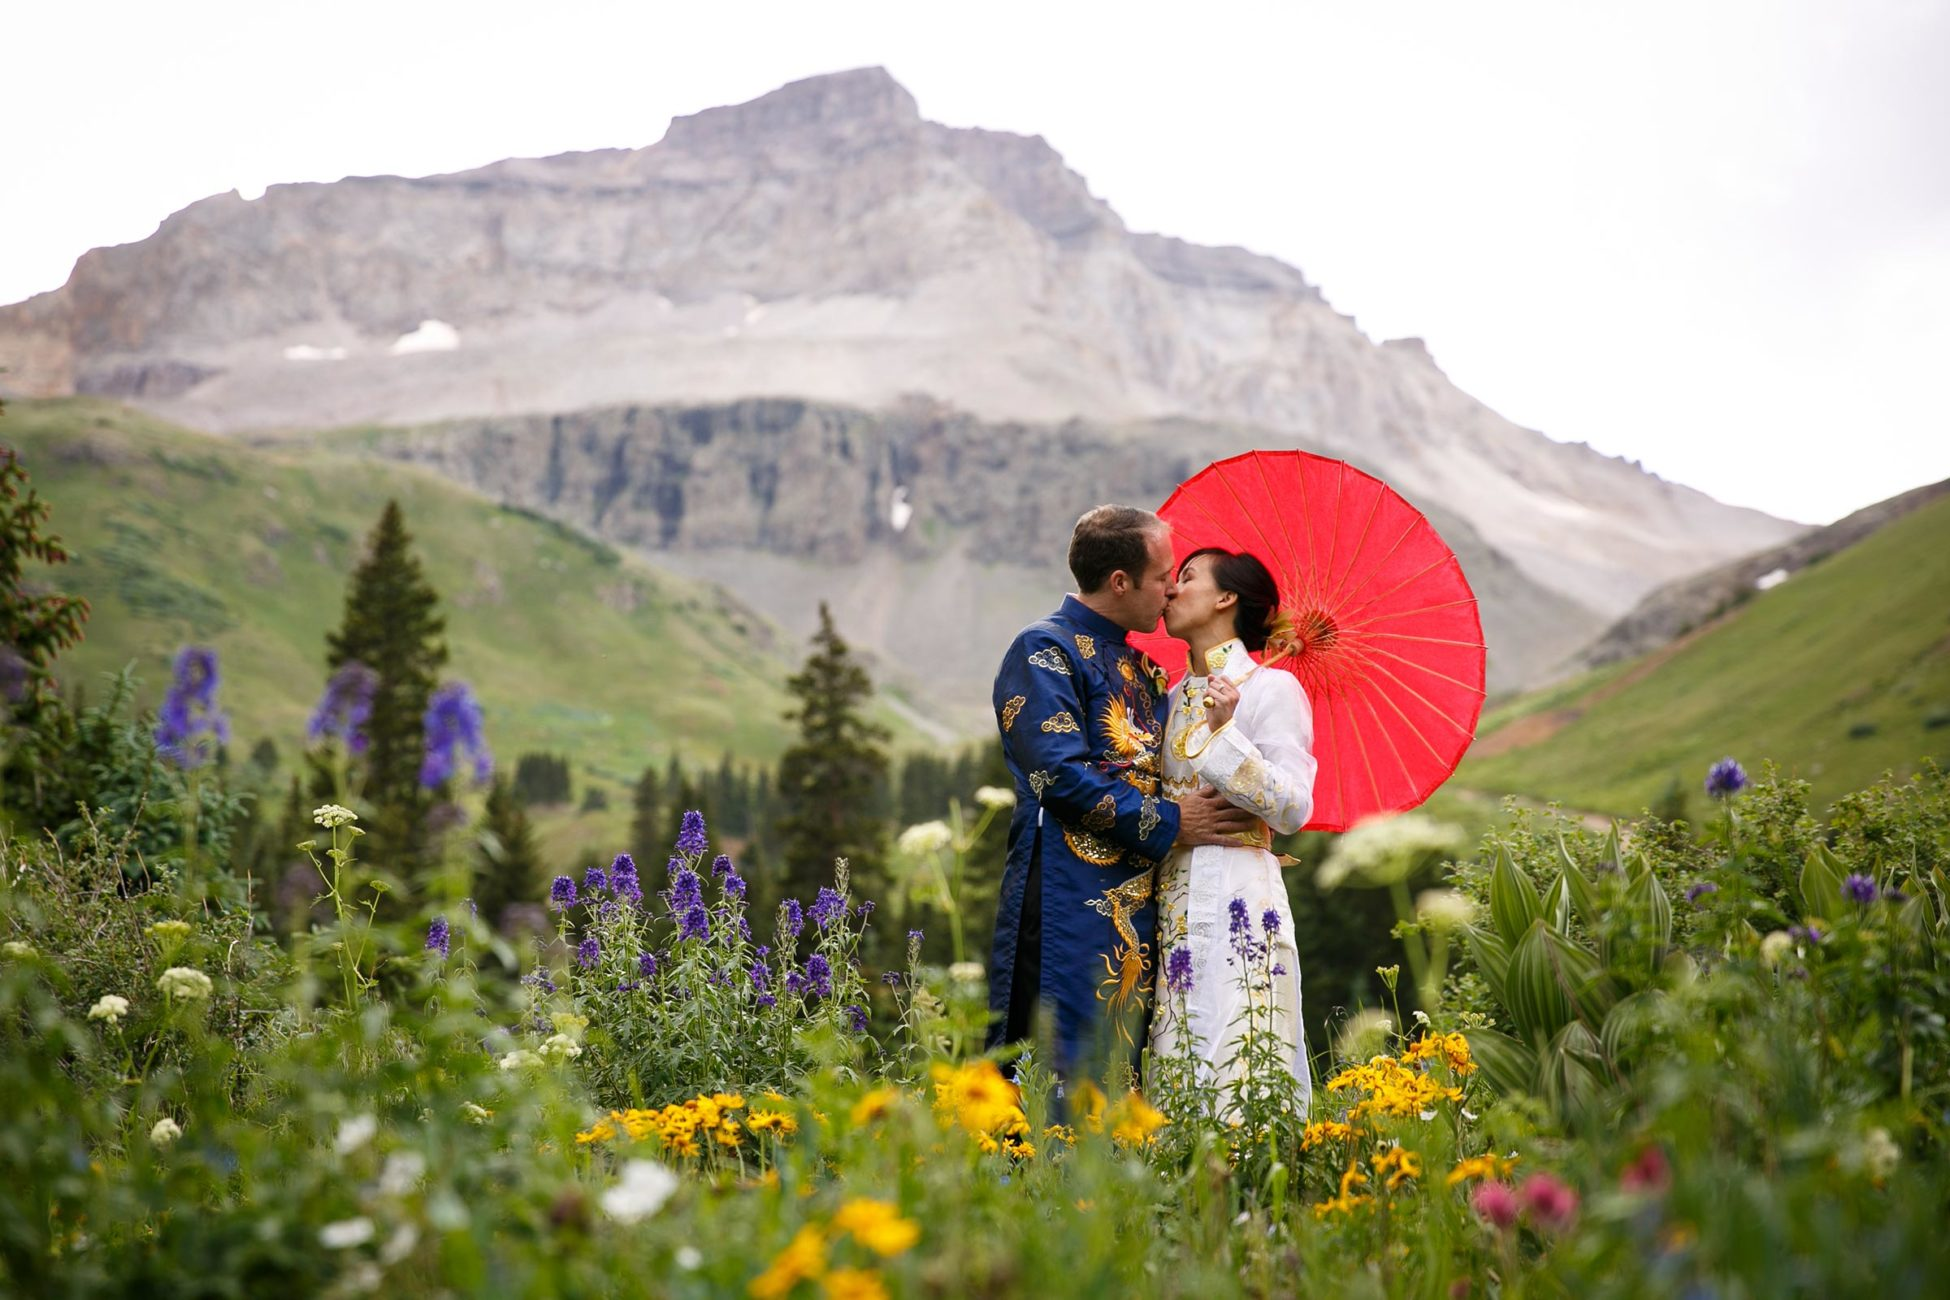 A unique asian-inspired adventure wedding during wildflower season in Ouray by Telluride wedding photographer Ben Eng